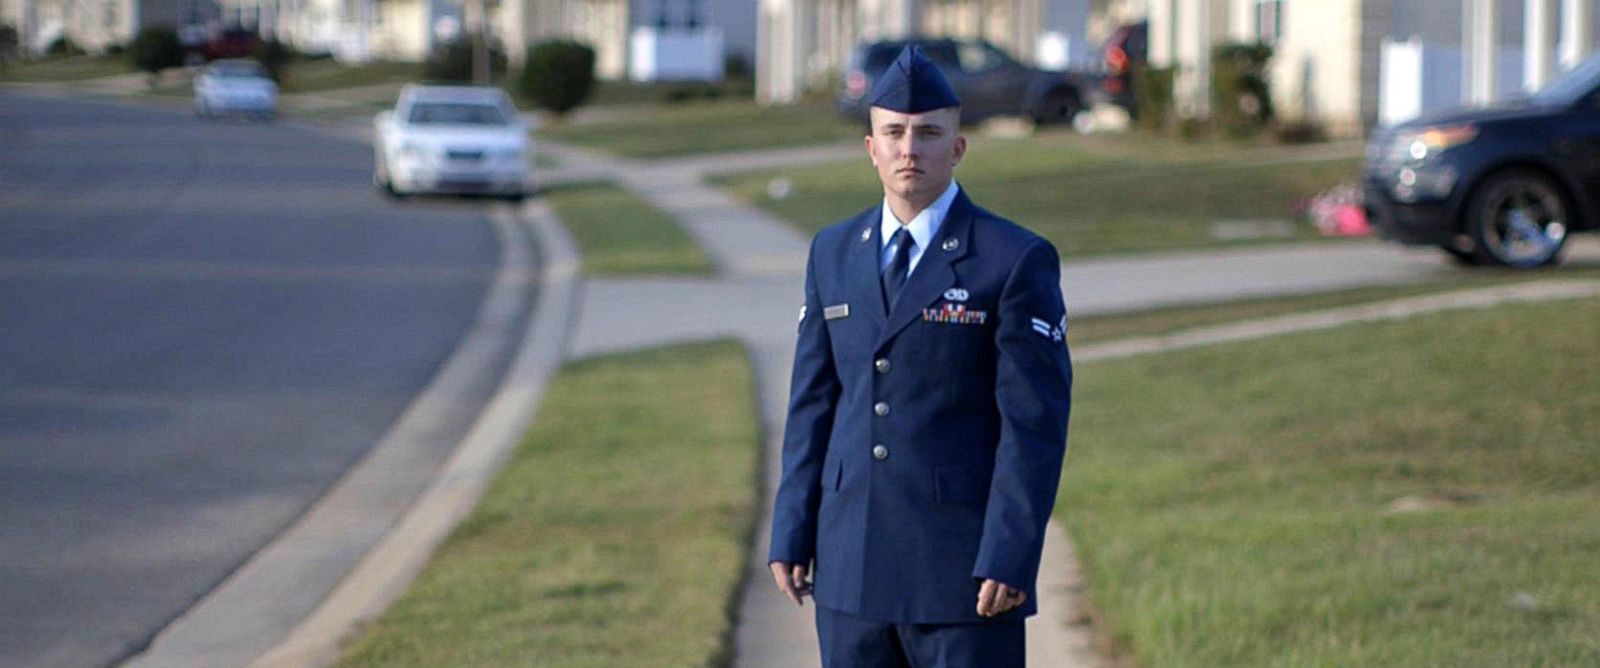 'PHOTO: Sterling Crutcher posted an emotional message on Facebook defending his military service shortly after President Donald Trump tweeted that transgender individuals should be banned from the military.' from the web at 'http://a.abcnews.com/images/Politics/transgender-military-sterling_portrait-abc-ps-171109_12x5_1600.jpg'